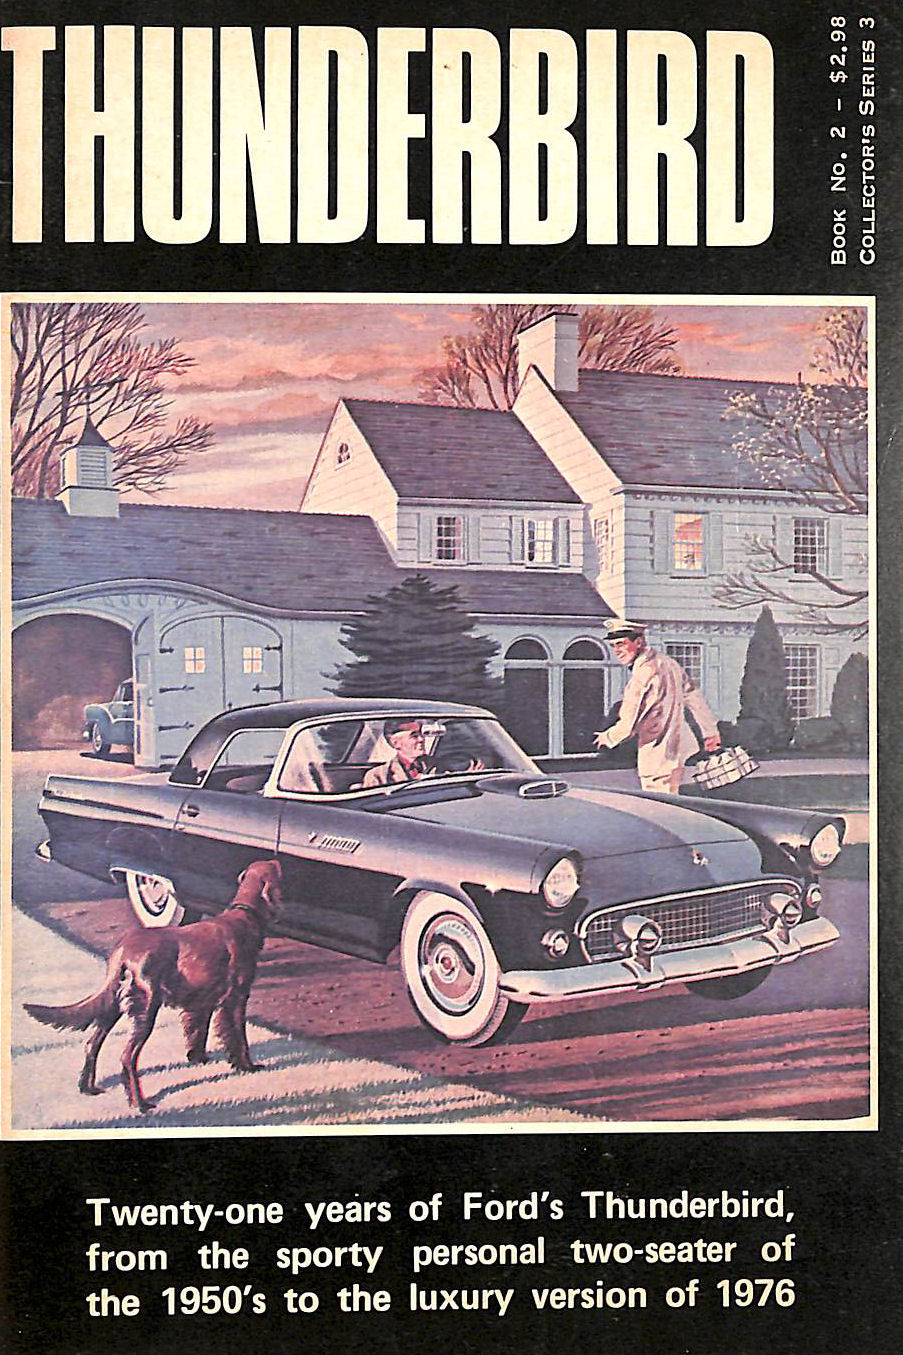 Image for Thunderbird (Book No. 2, Collector's Series 3) 21 Years of Ford's Thunderbird, from the Sporty Personal Two-Seater of the 1950's to The Luxury Version of 1976.